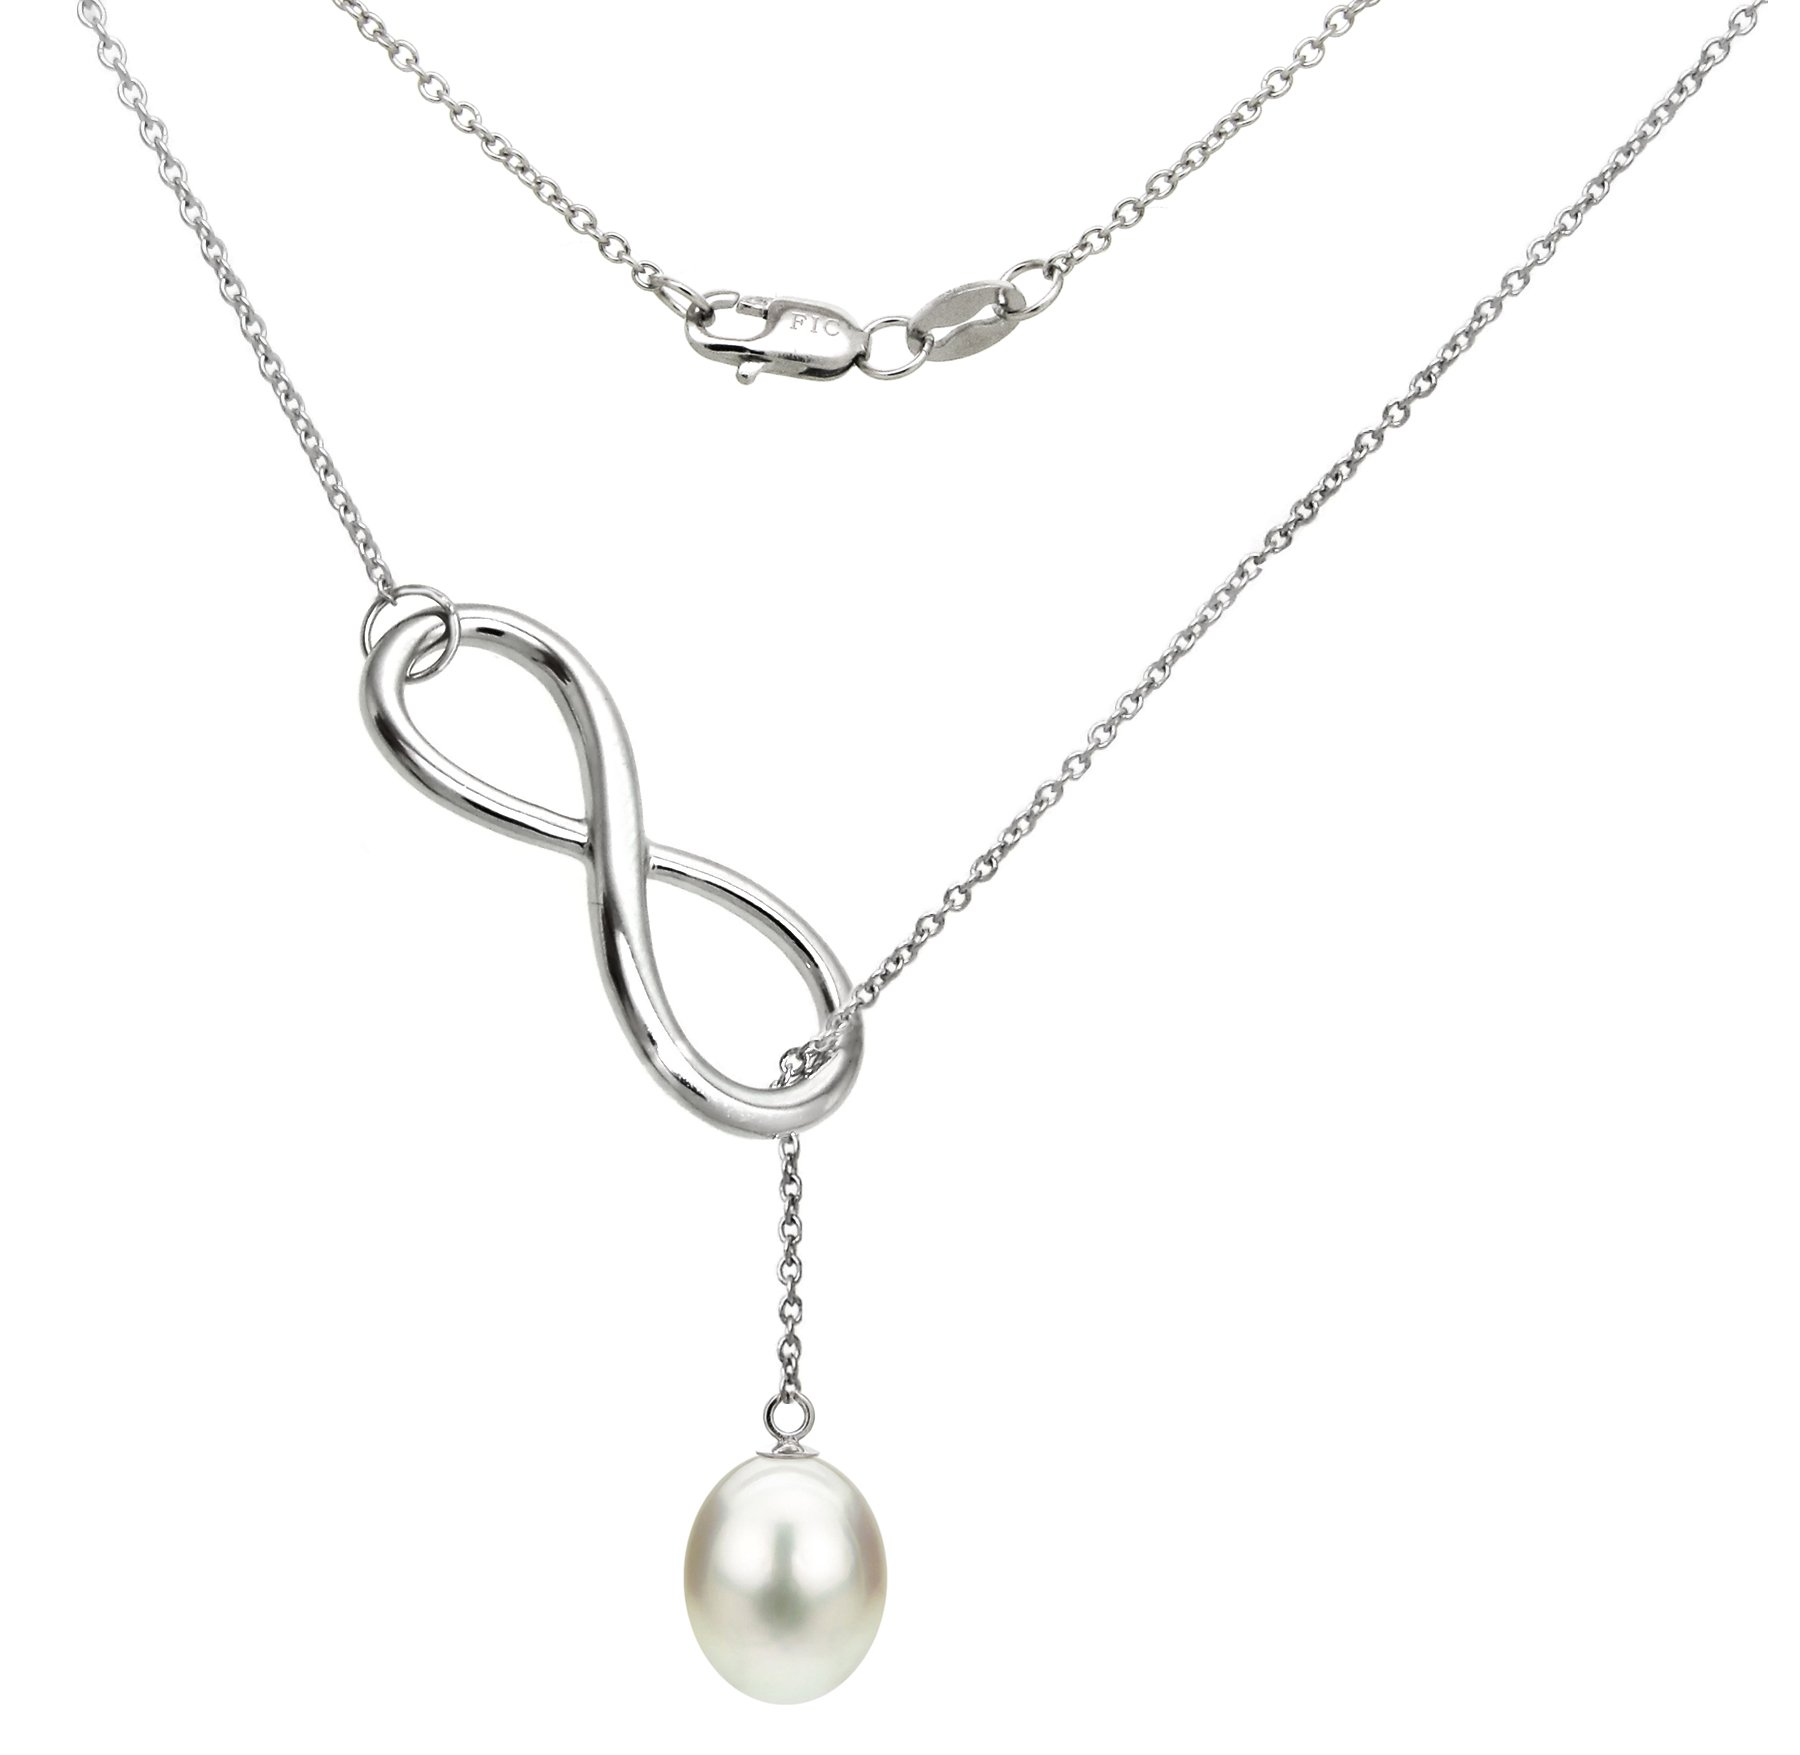 Sterling Silver Infinity Chain Necklace with 8-8.5mm White Long Shape Freshwater Cultured Pearl, 18'' by La Regis Jewelry